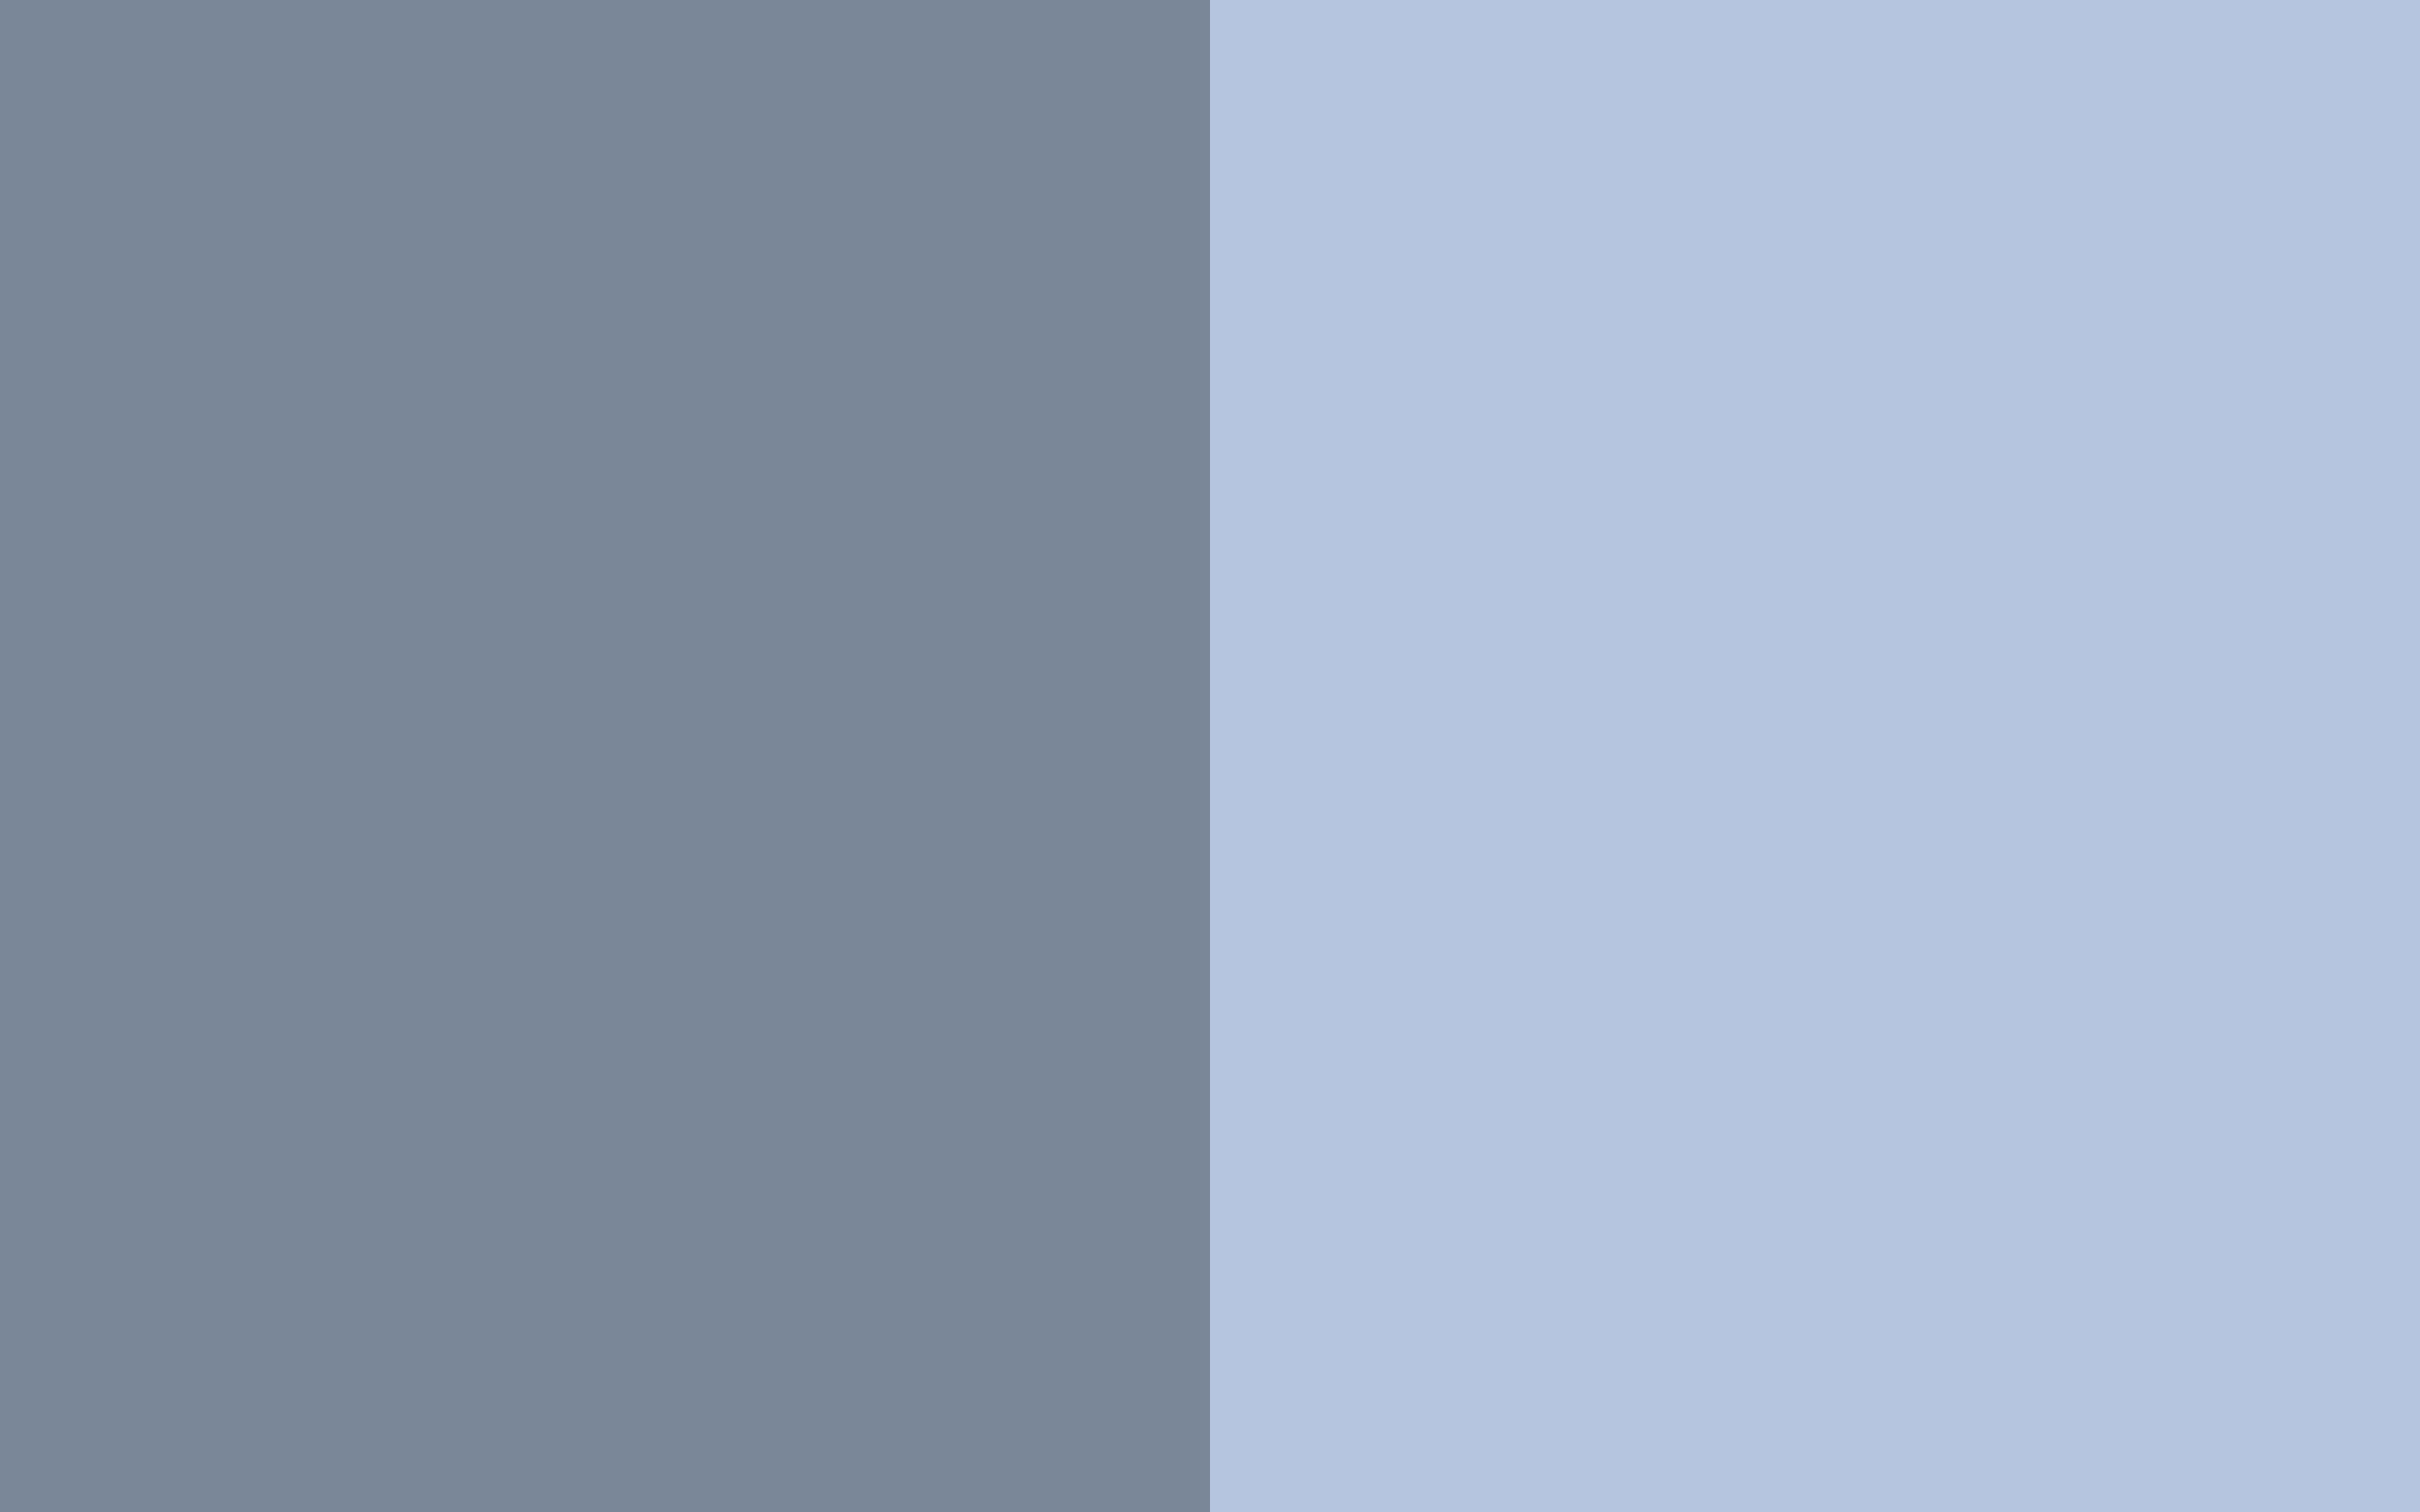 Gray and blue wallpaper wallpapersafari Light blue gray paint colors